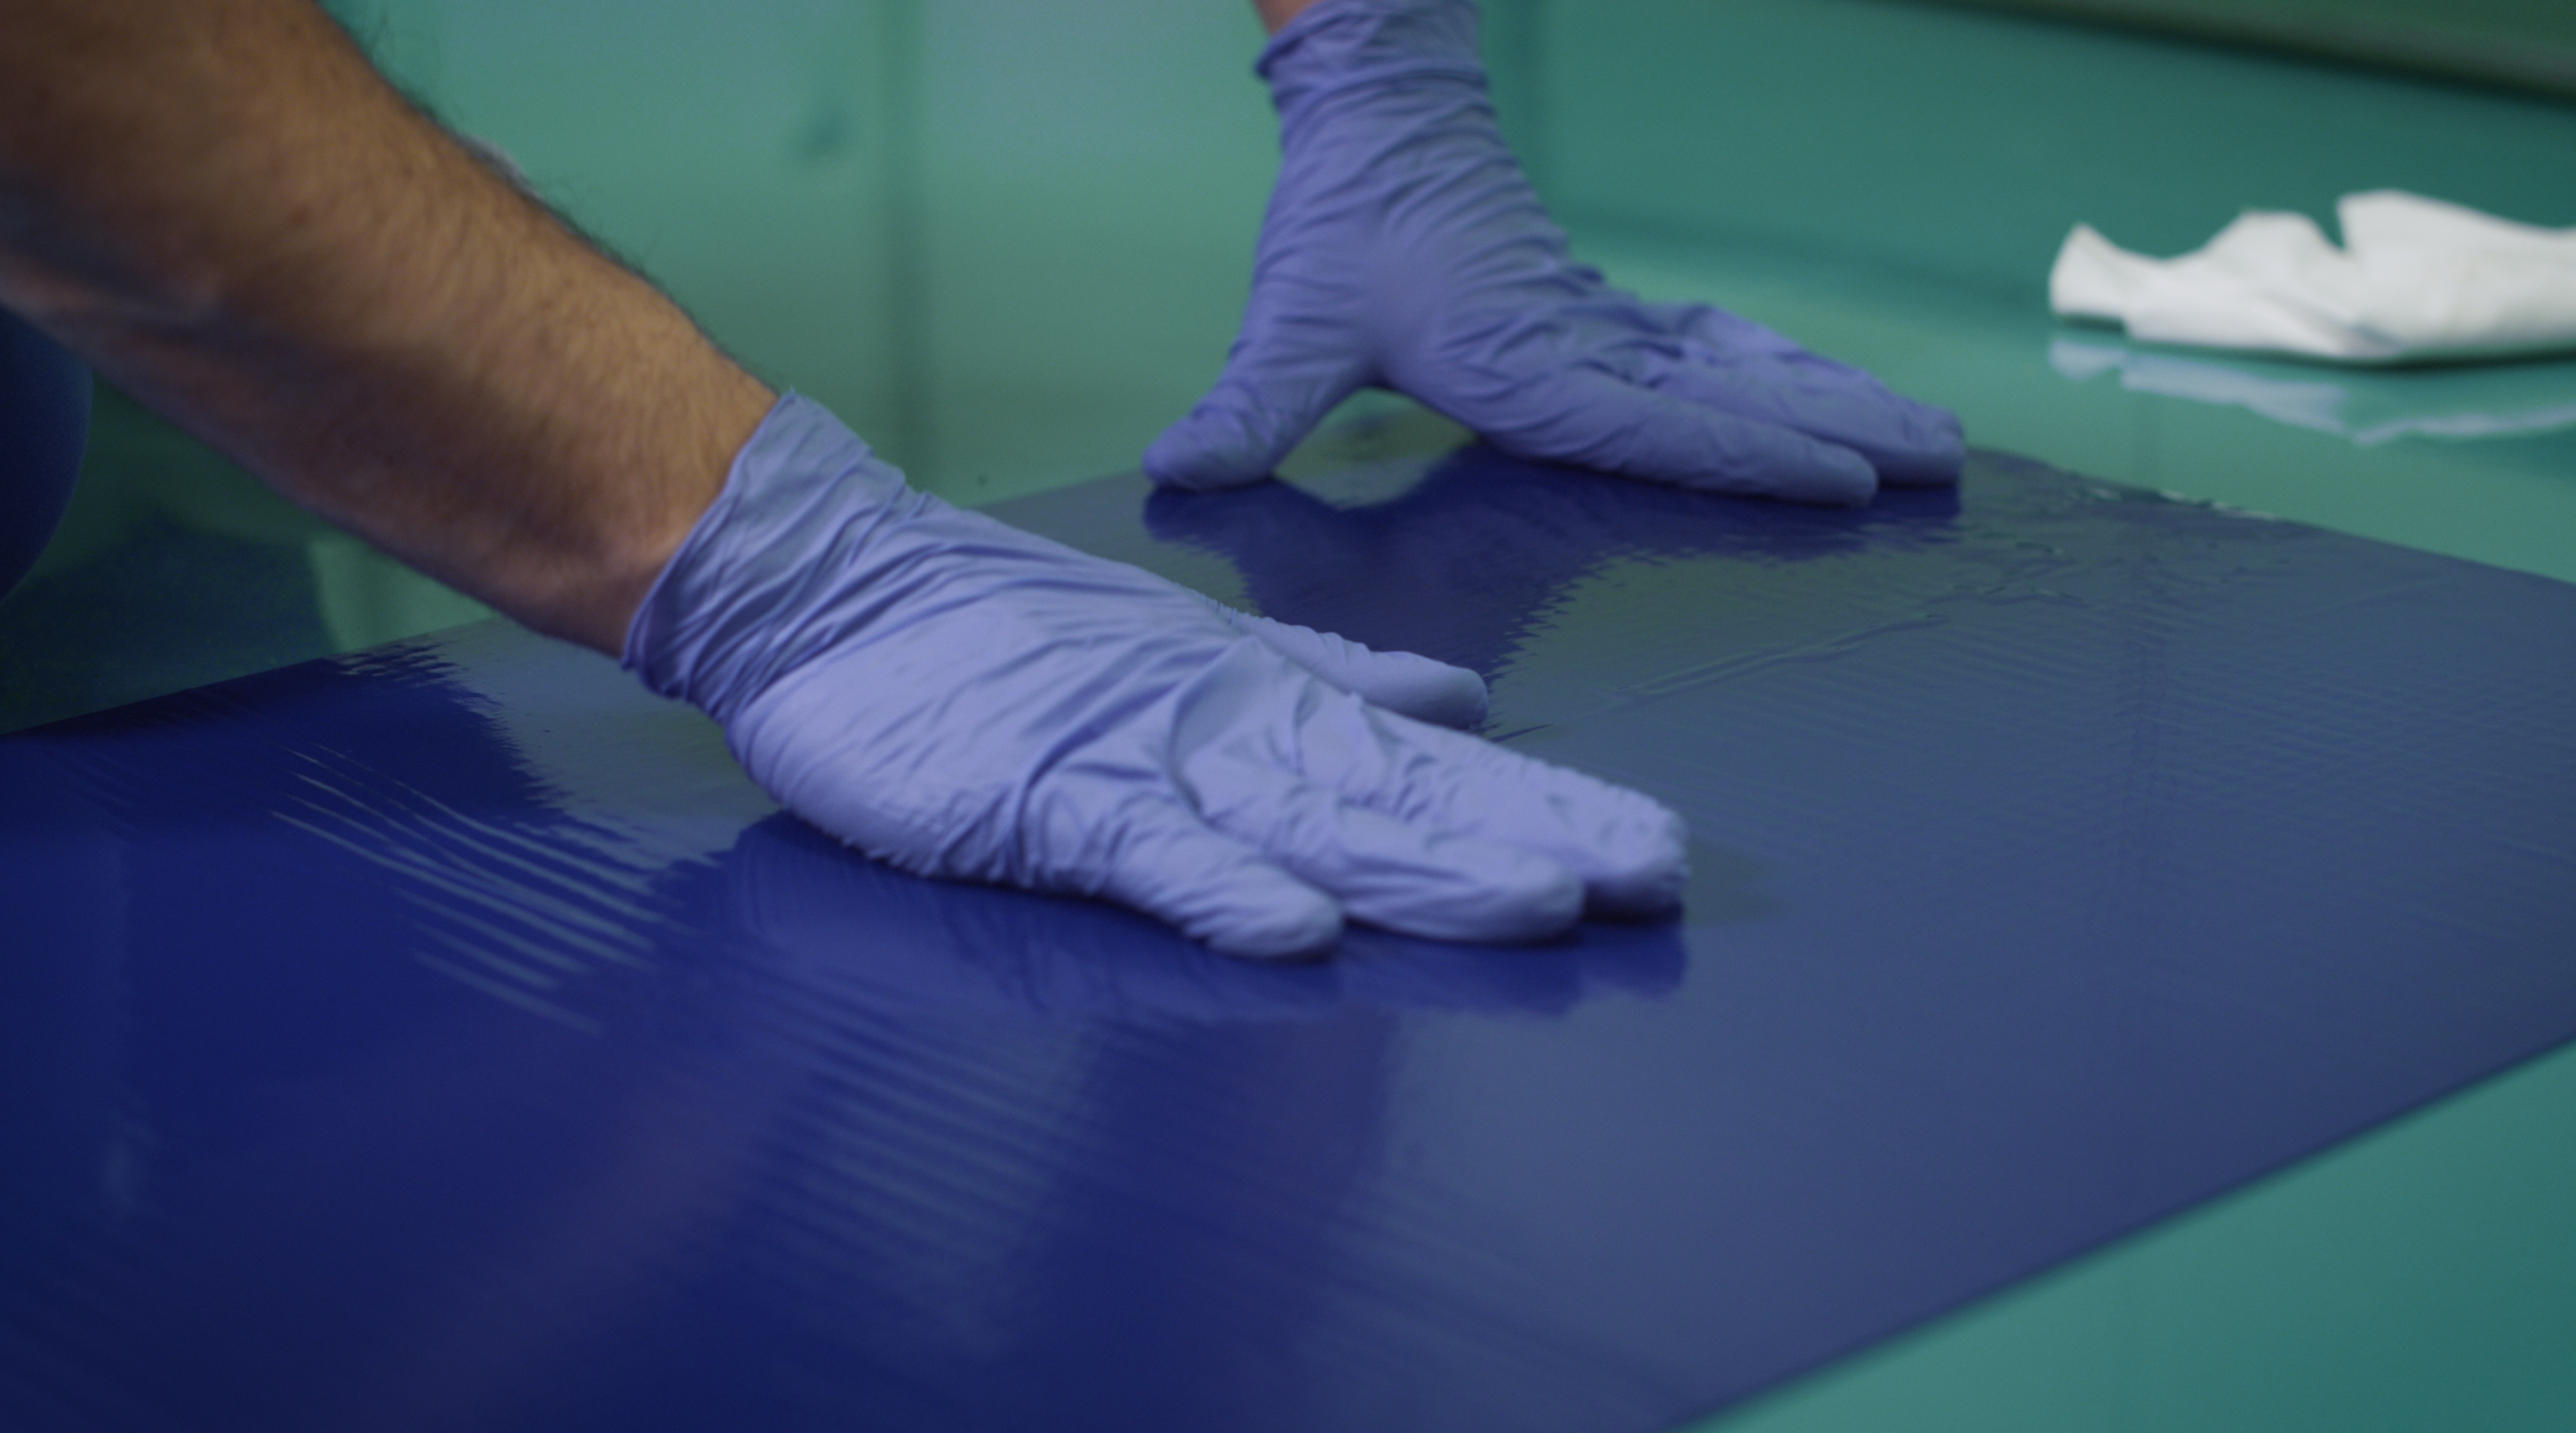 In the picture we can see hands wearing blue gloves, these hands are adhesing a mat on the ground.